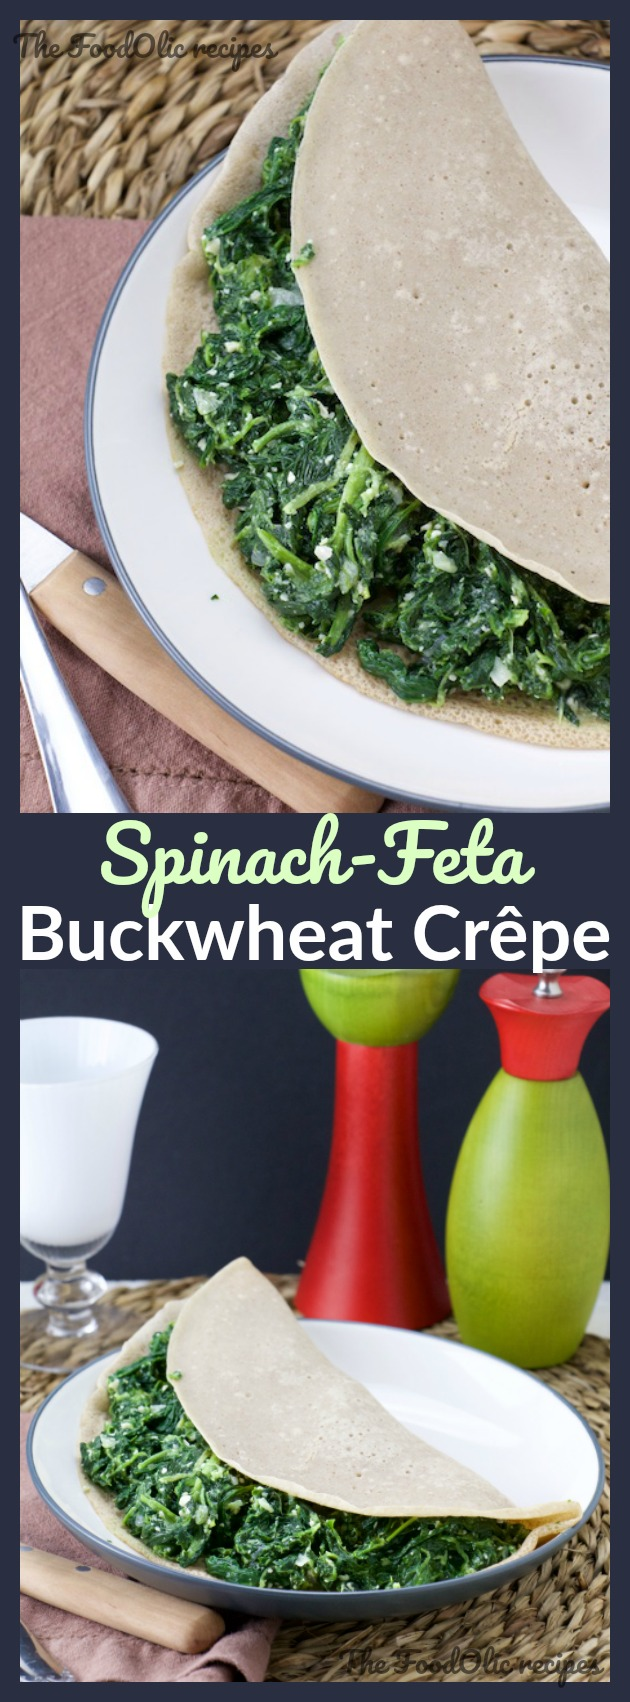 buckwheat galette crepe spinach feta